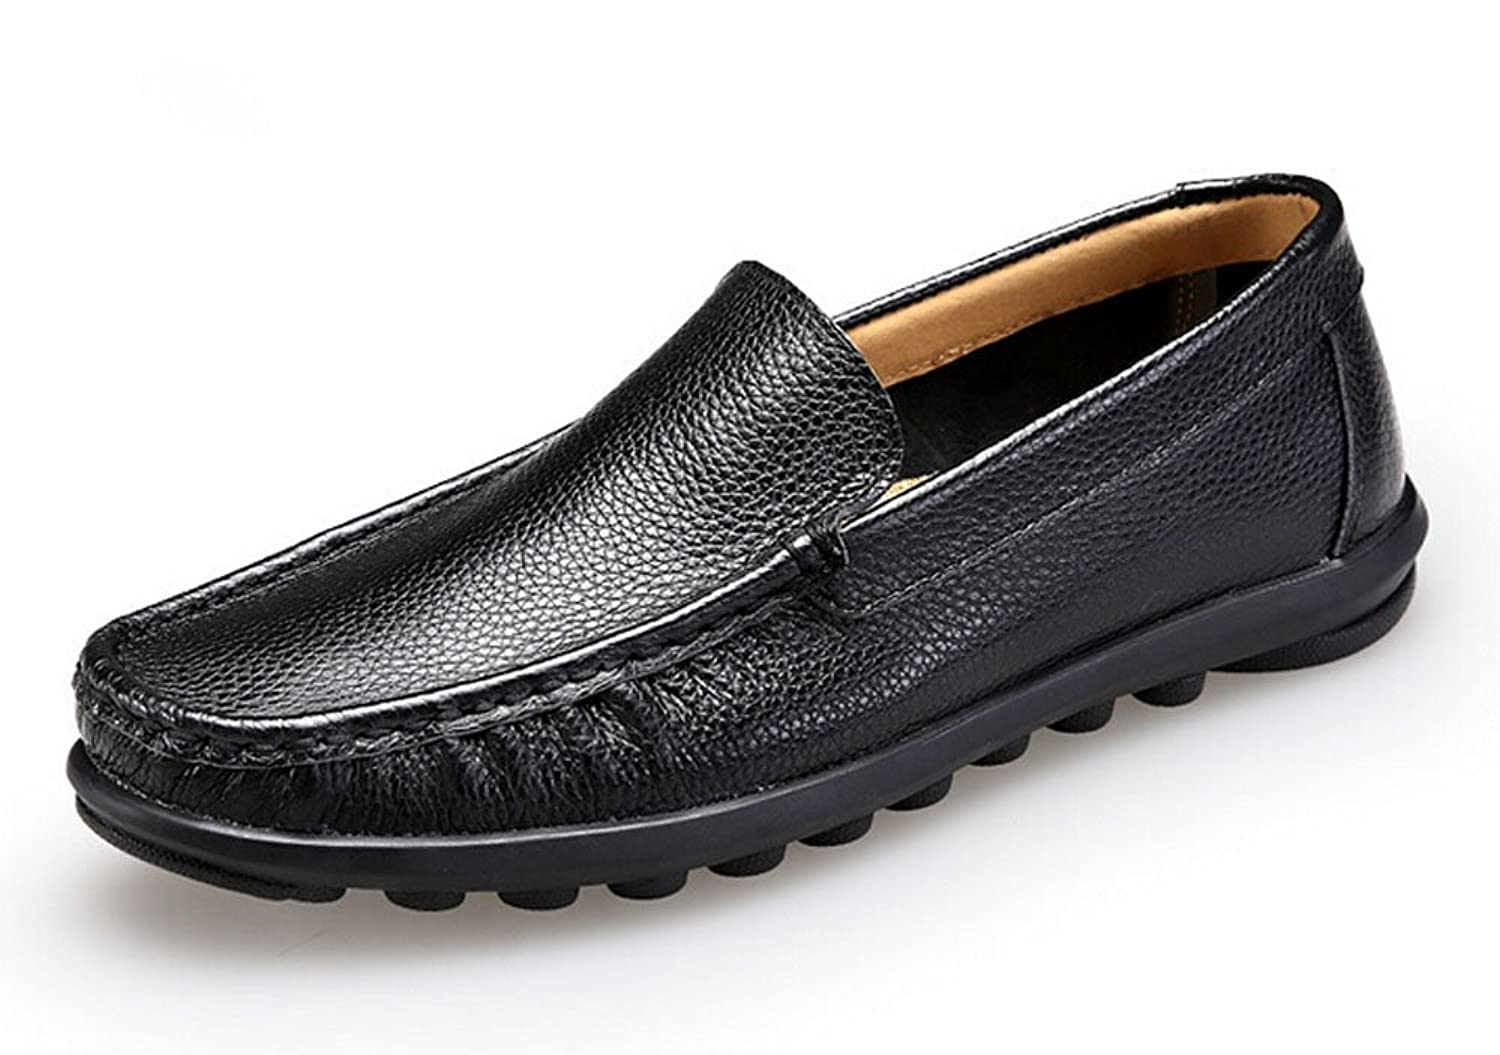 Durable Service Menu0026#39;s Casual Shoes Driving Loafers Leather Shoes - Lanzarents.com